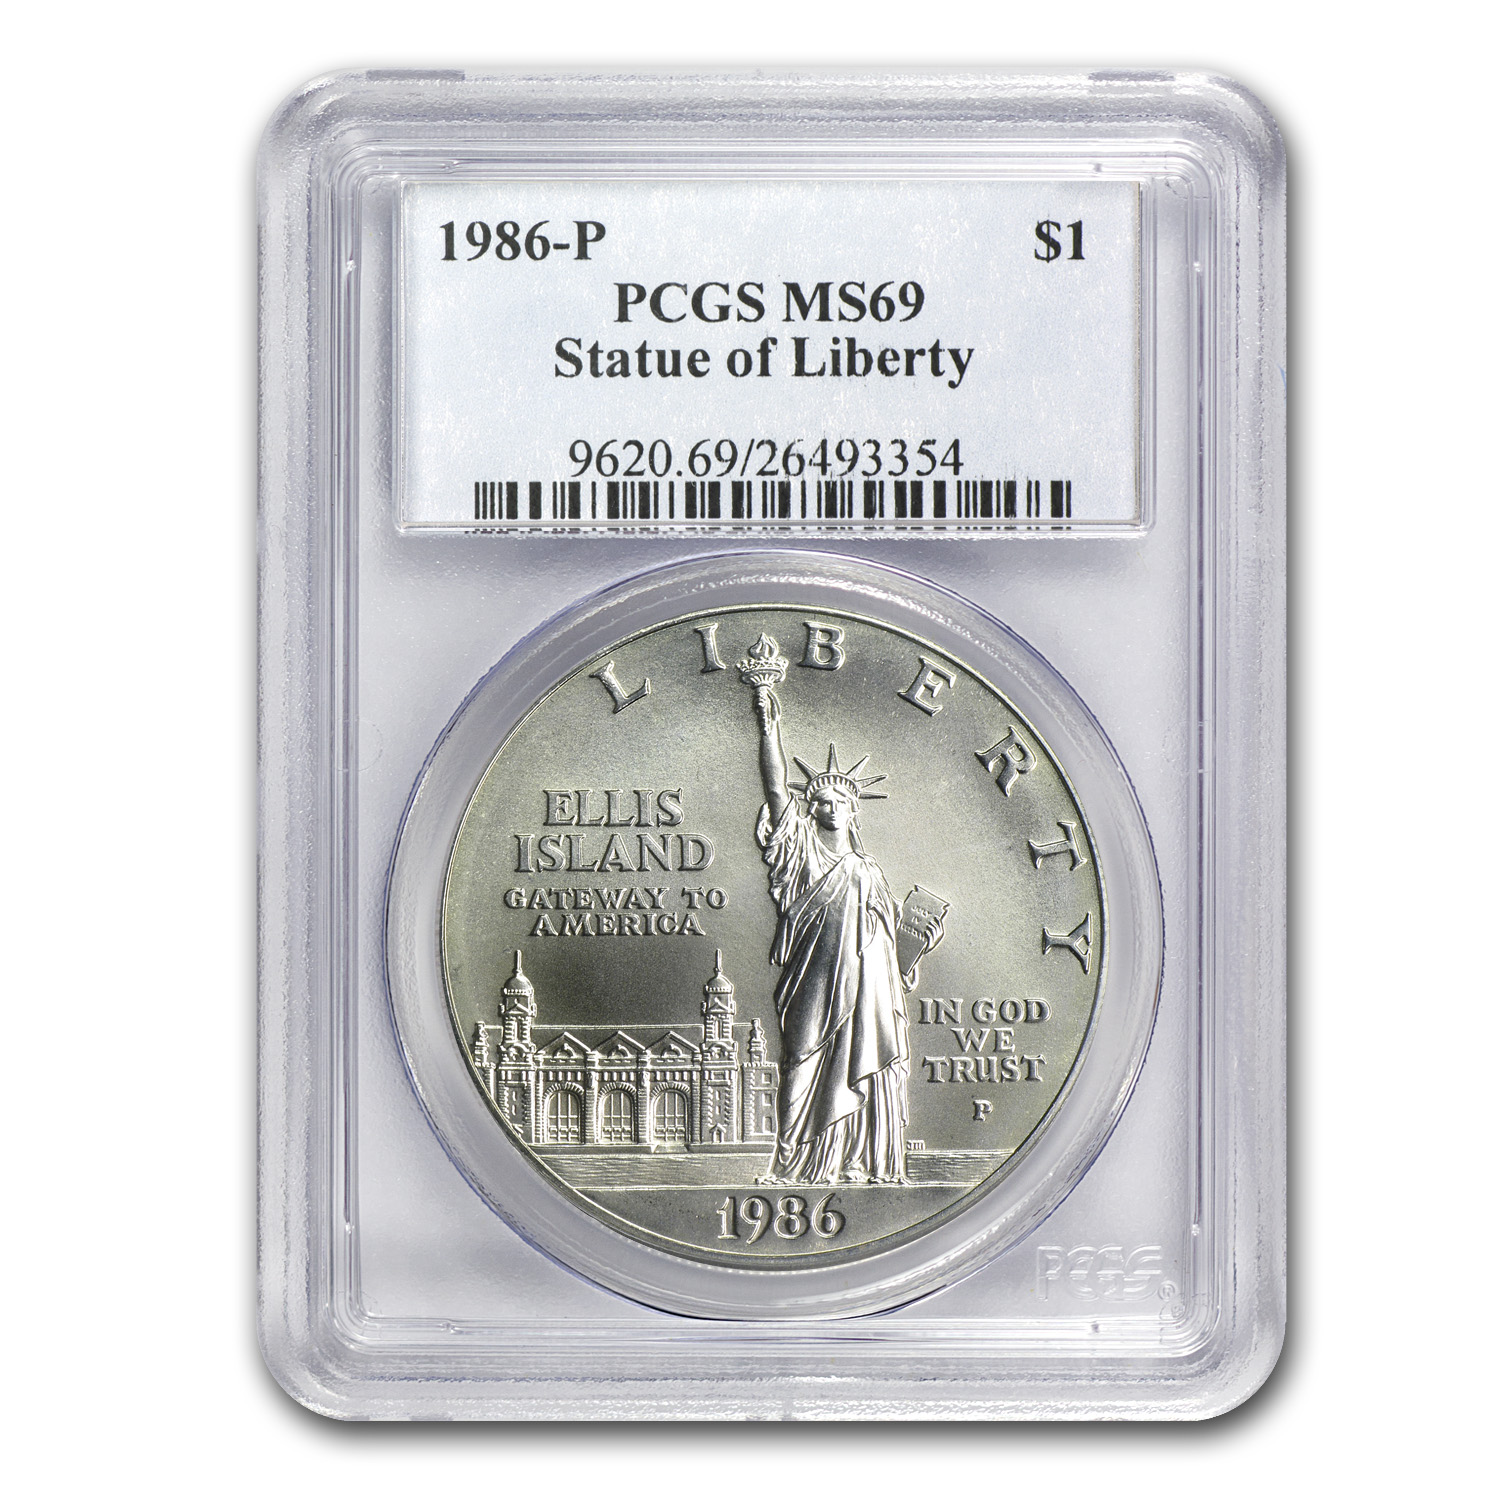 1986-P Statue of Liberty $1 Silver Commemorative MS-69 PCGS